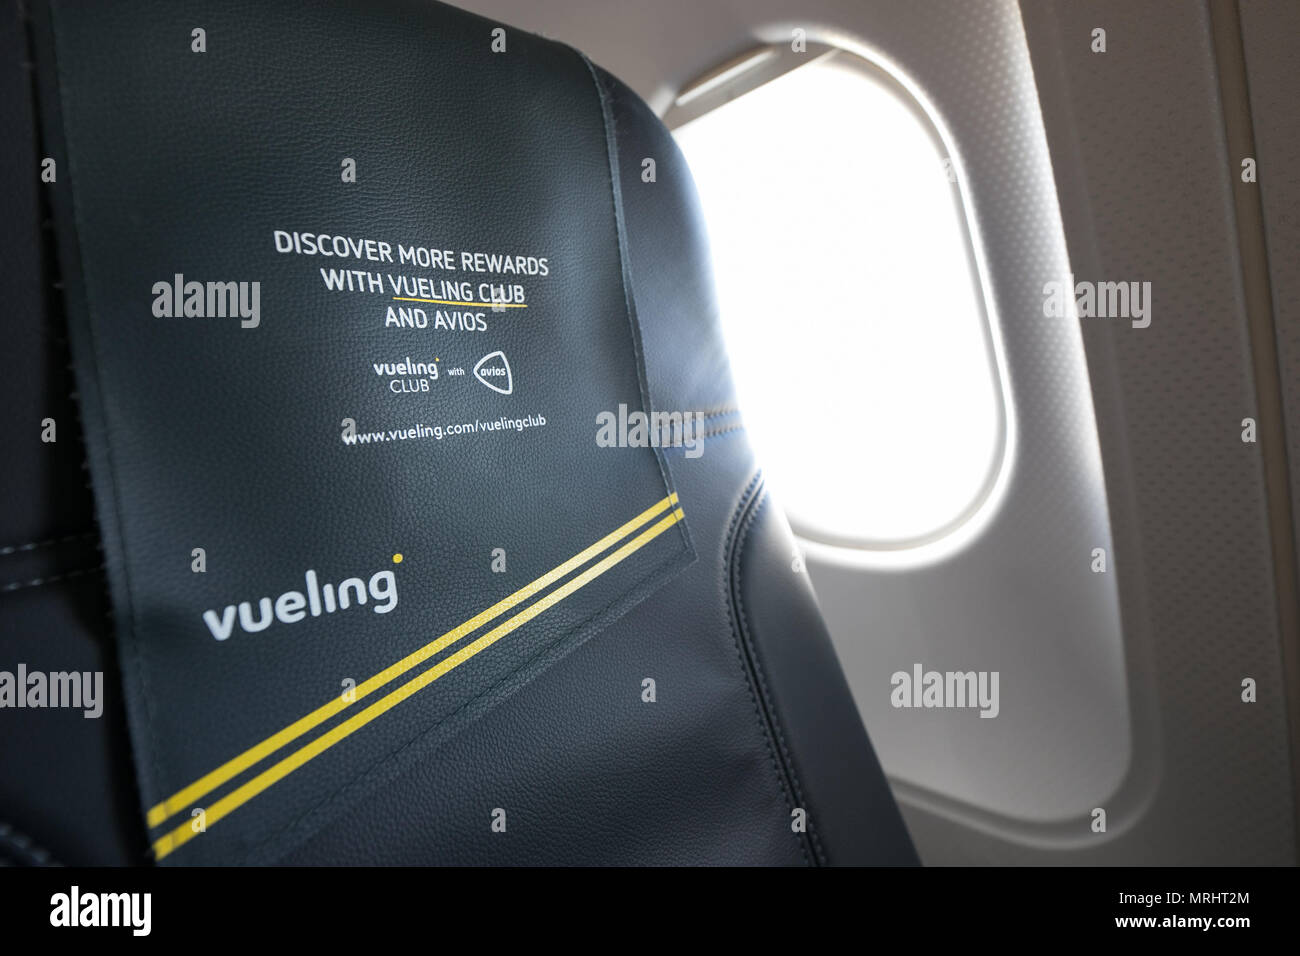 Vueling airbus interior armchair and window - Stock Image